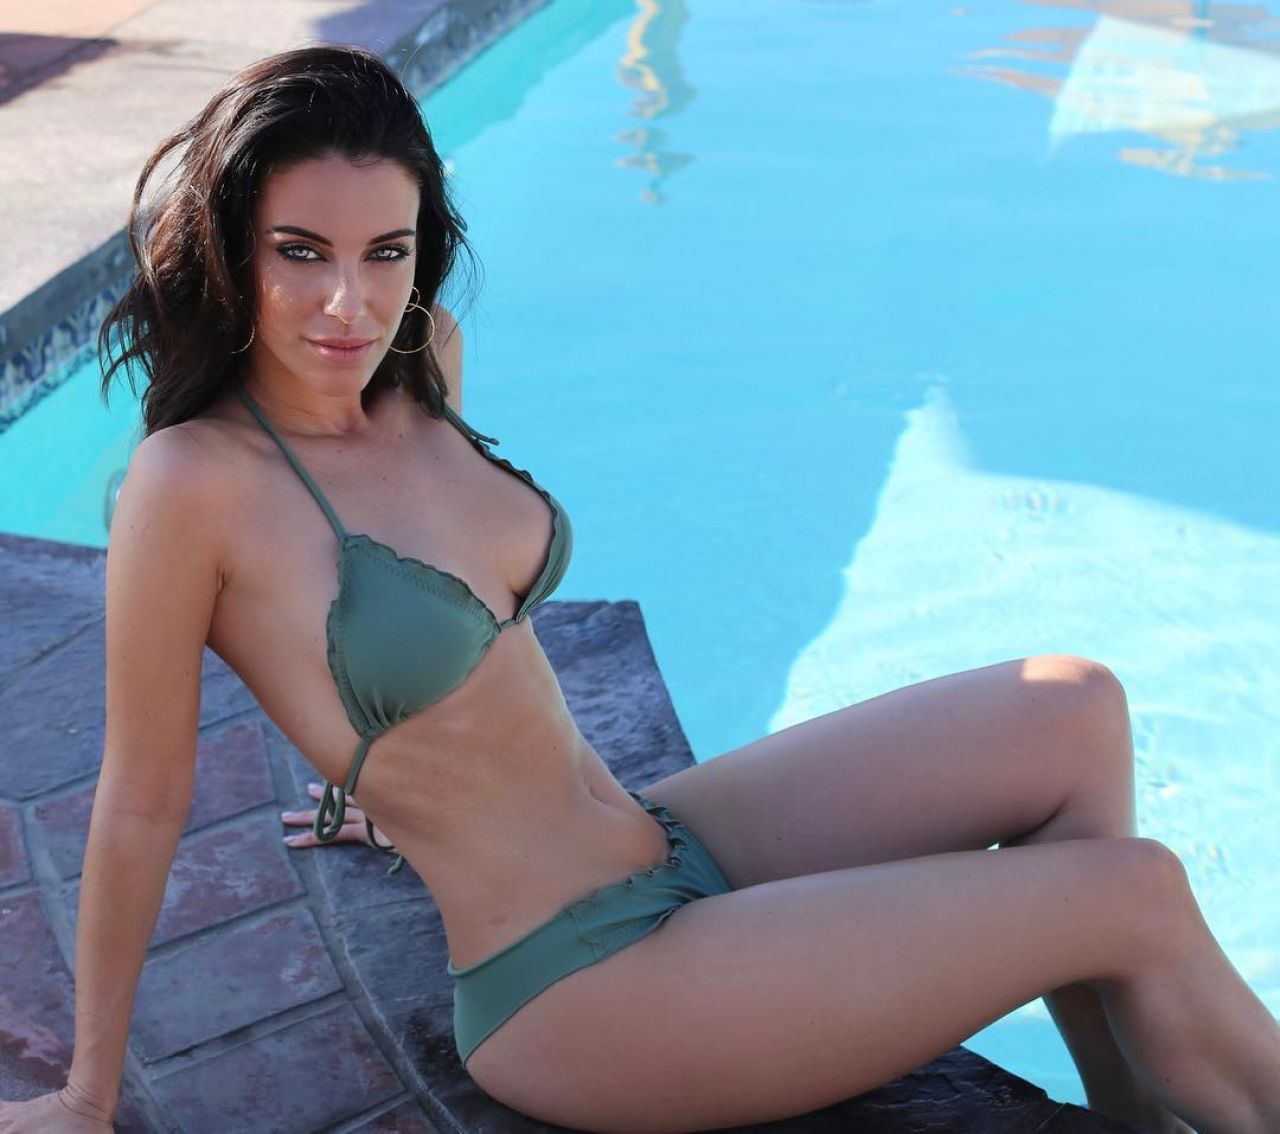 Watch Jessica lowndes sexy 7 Photos video